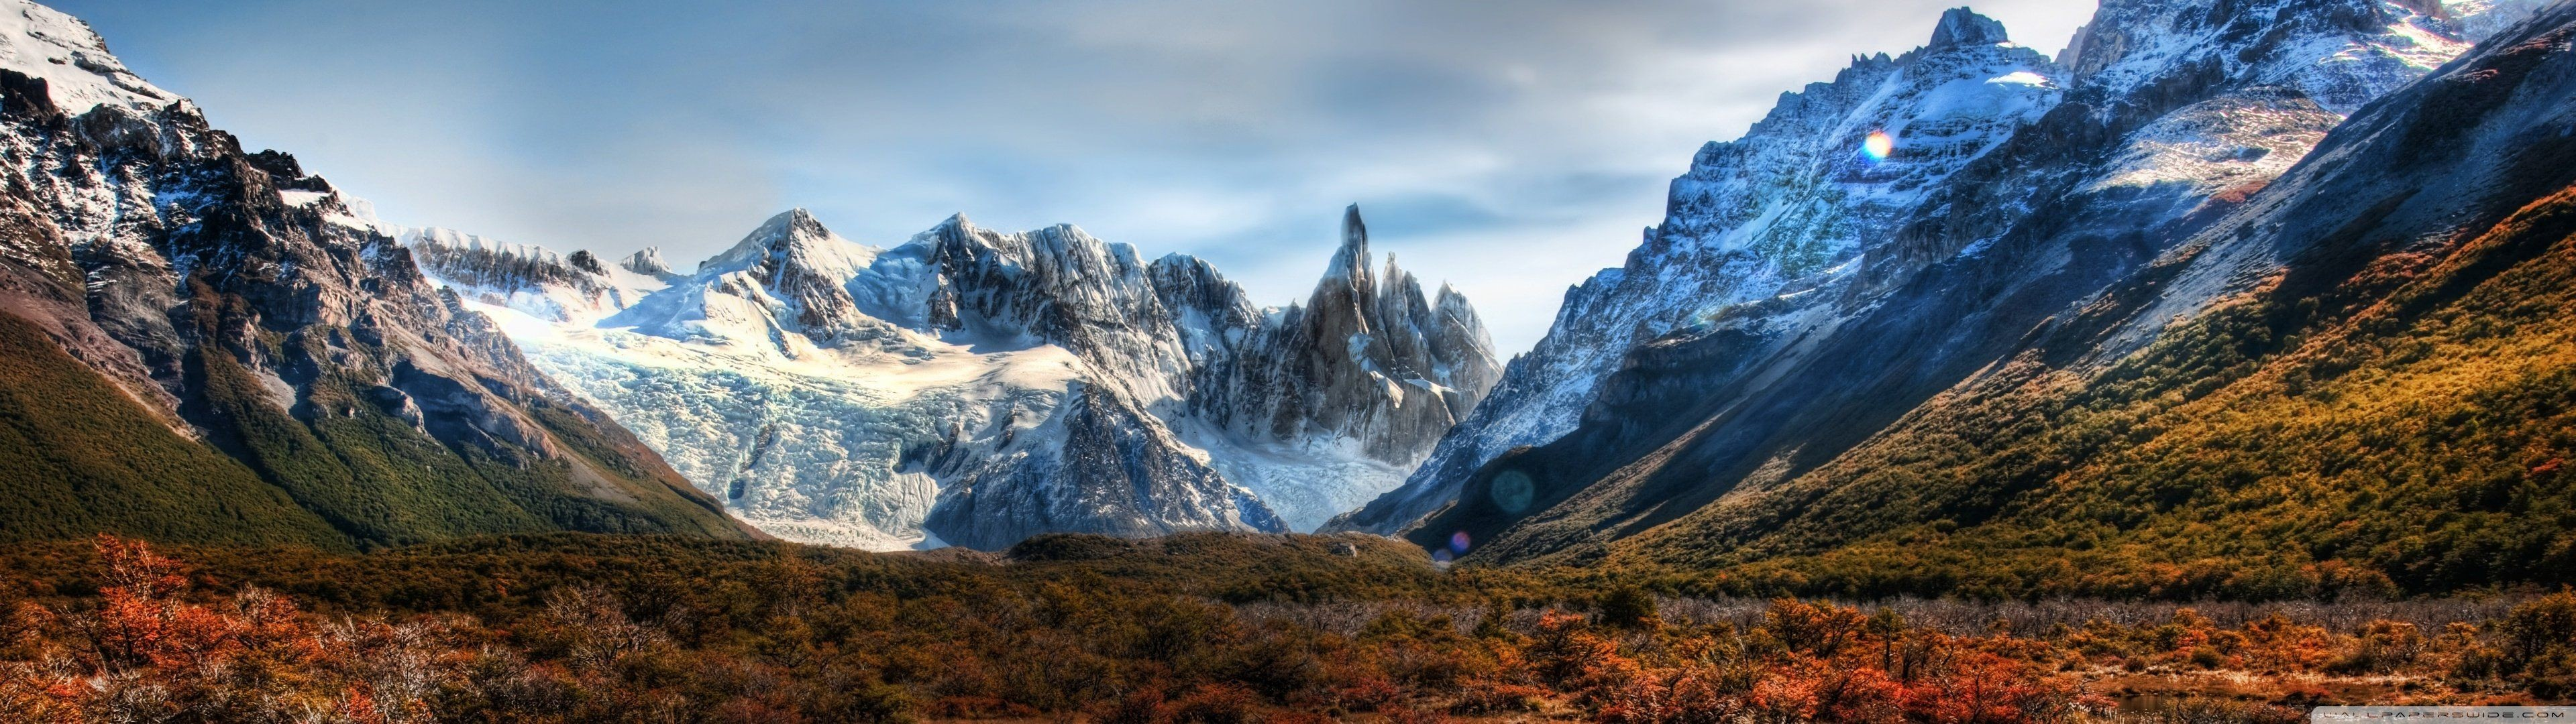 Res: 3840x1080, Mountains Dual Screen Wallpaper |  | ID:43219